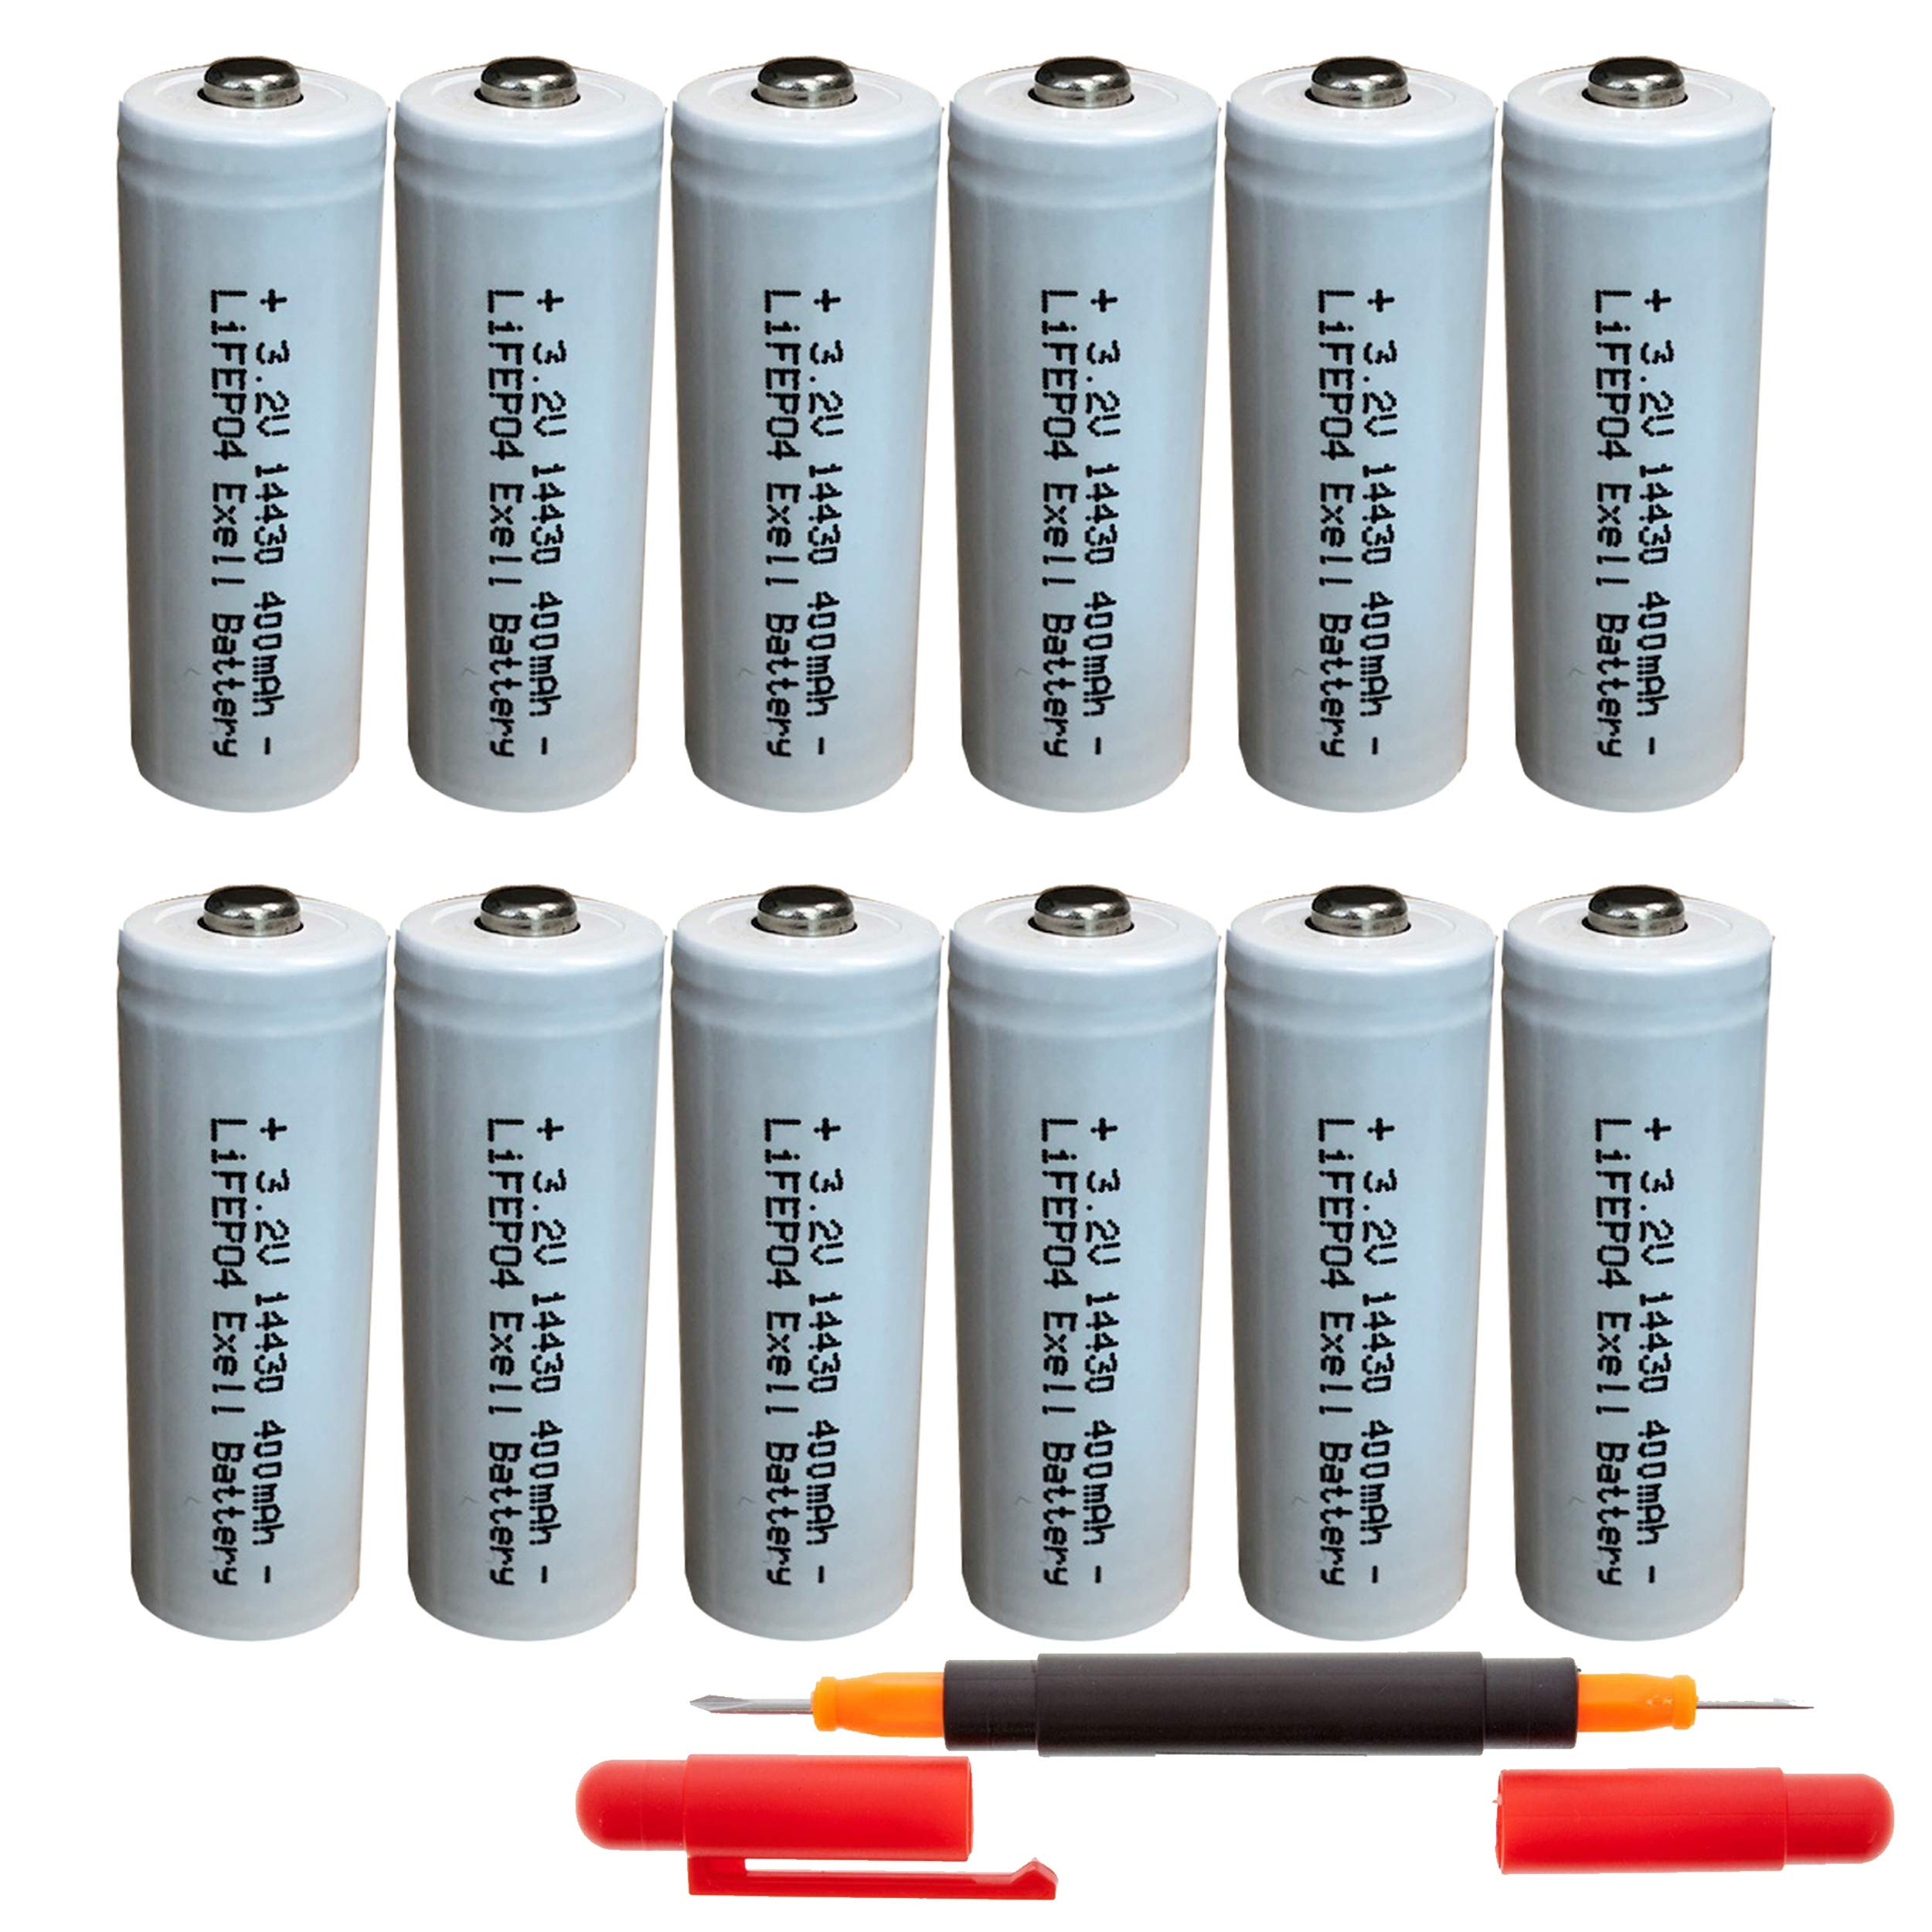 (12-Pack) Exell Battery 3.2V Li-FePO4 Size 14430 (14 x 43mm) 400mAh Rechargeable Battery For Garden Lights, Solar Lamps, LED Flashlights FAST USA SHIP by Exell Battery